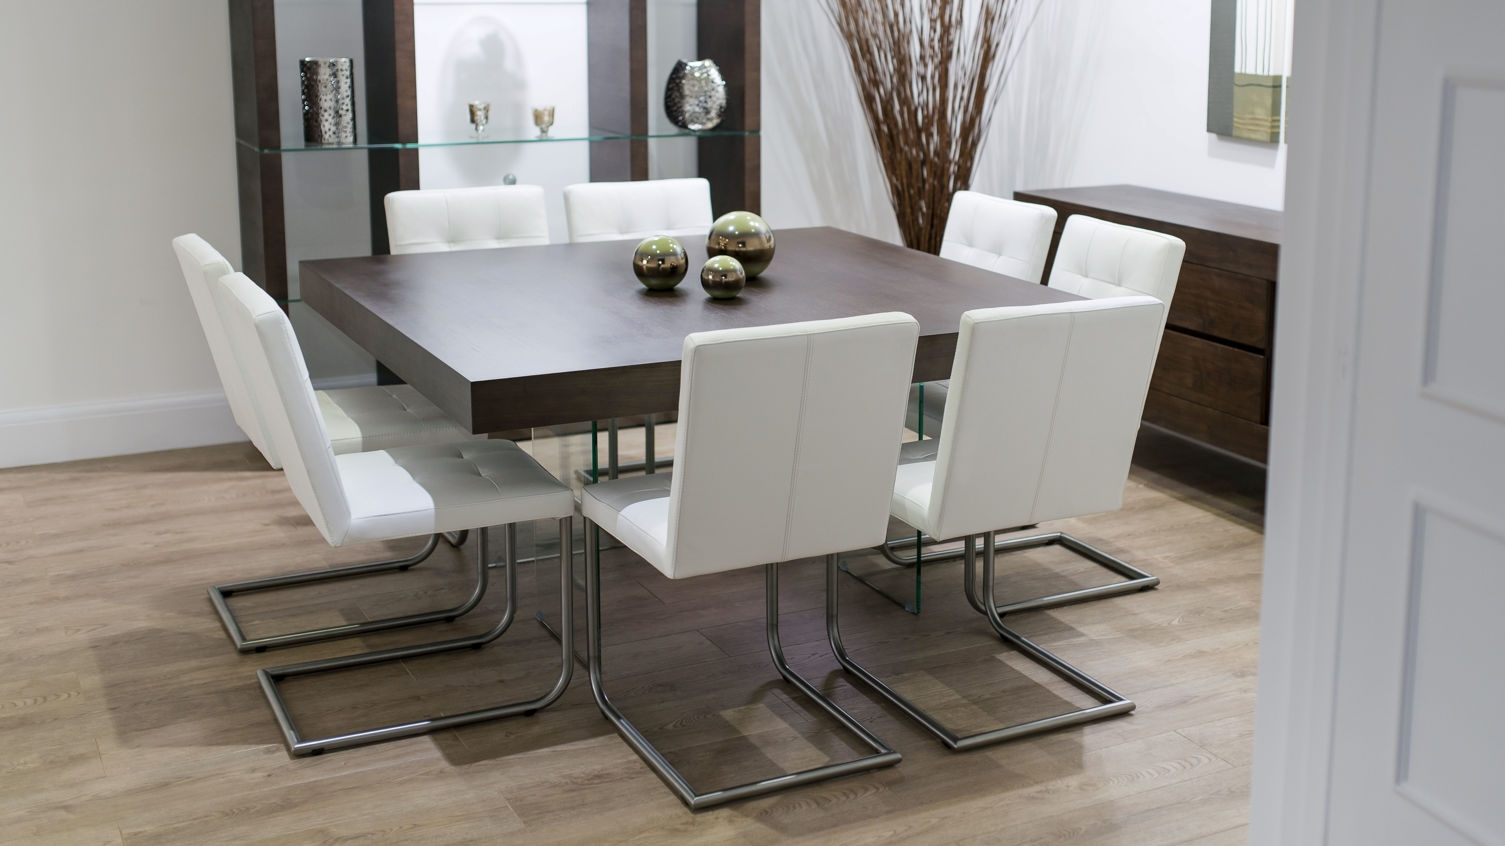 Square Dining Table For 9 Inside Article With Tag 9 Set – layjao